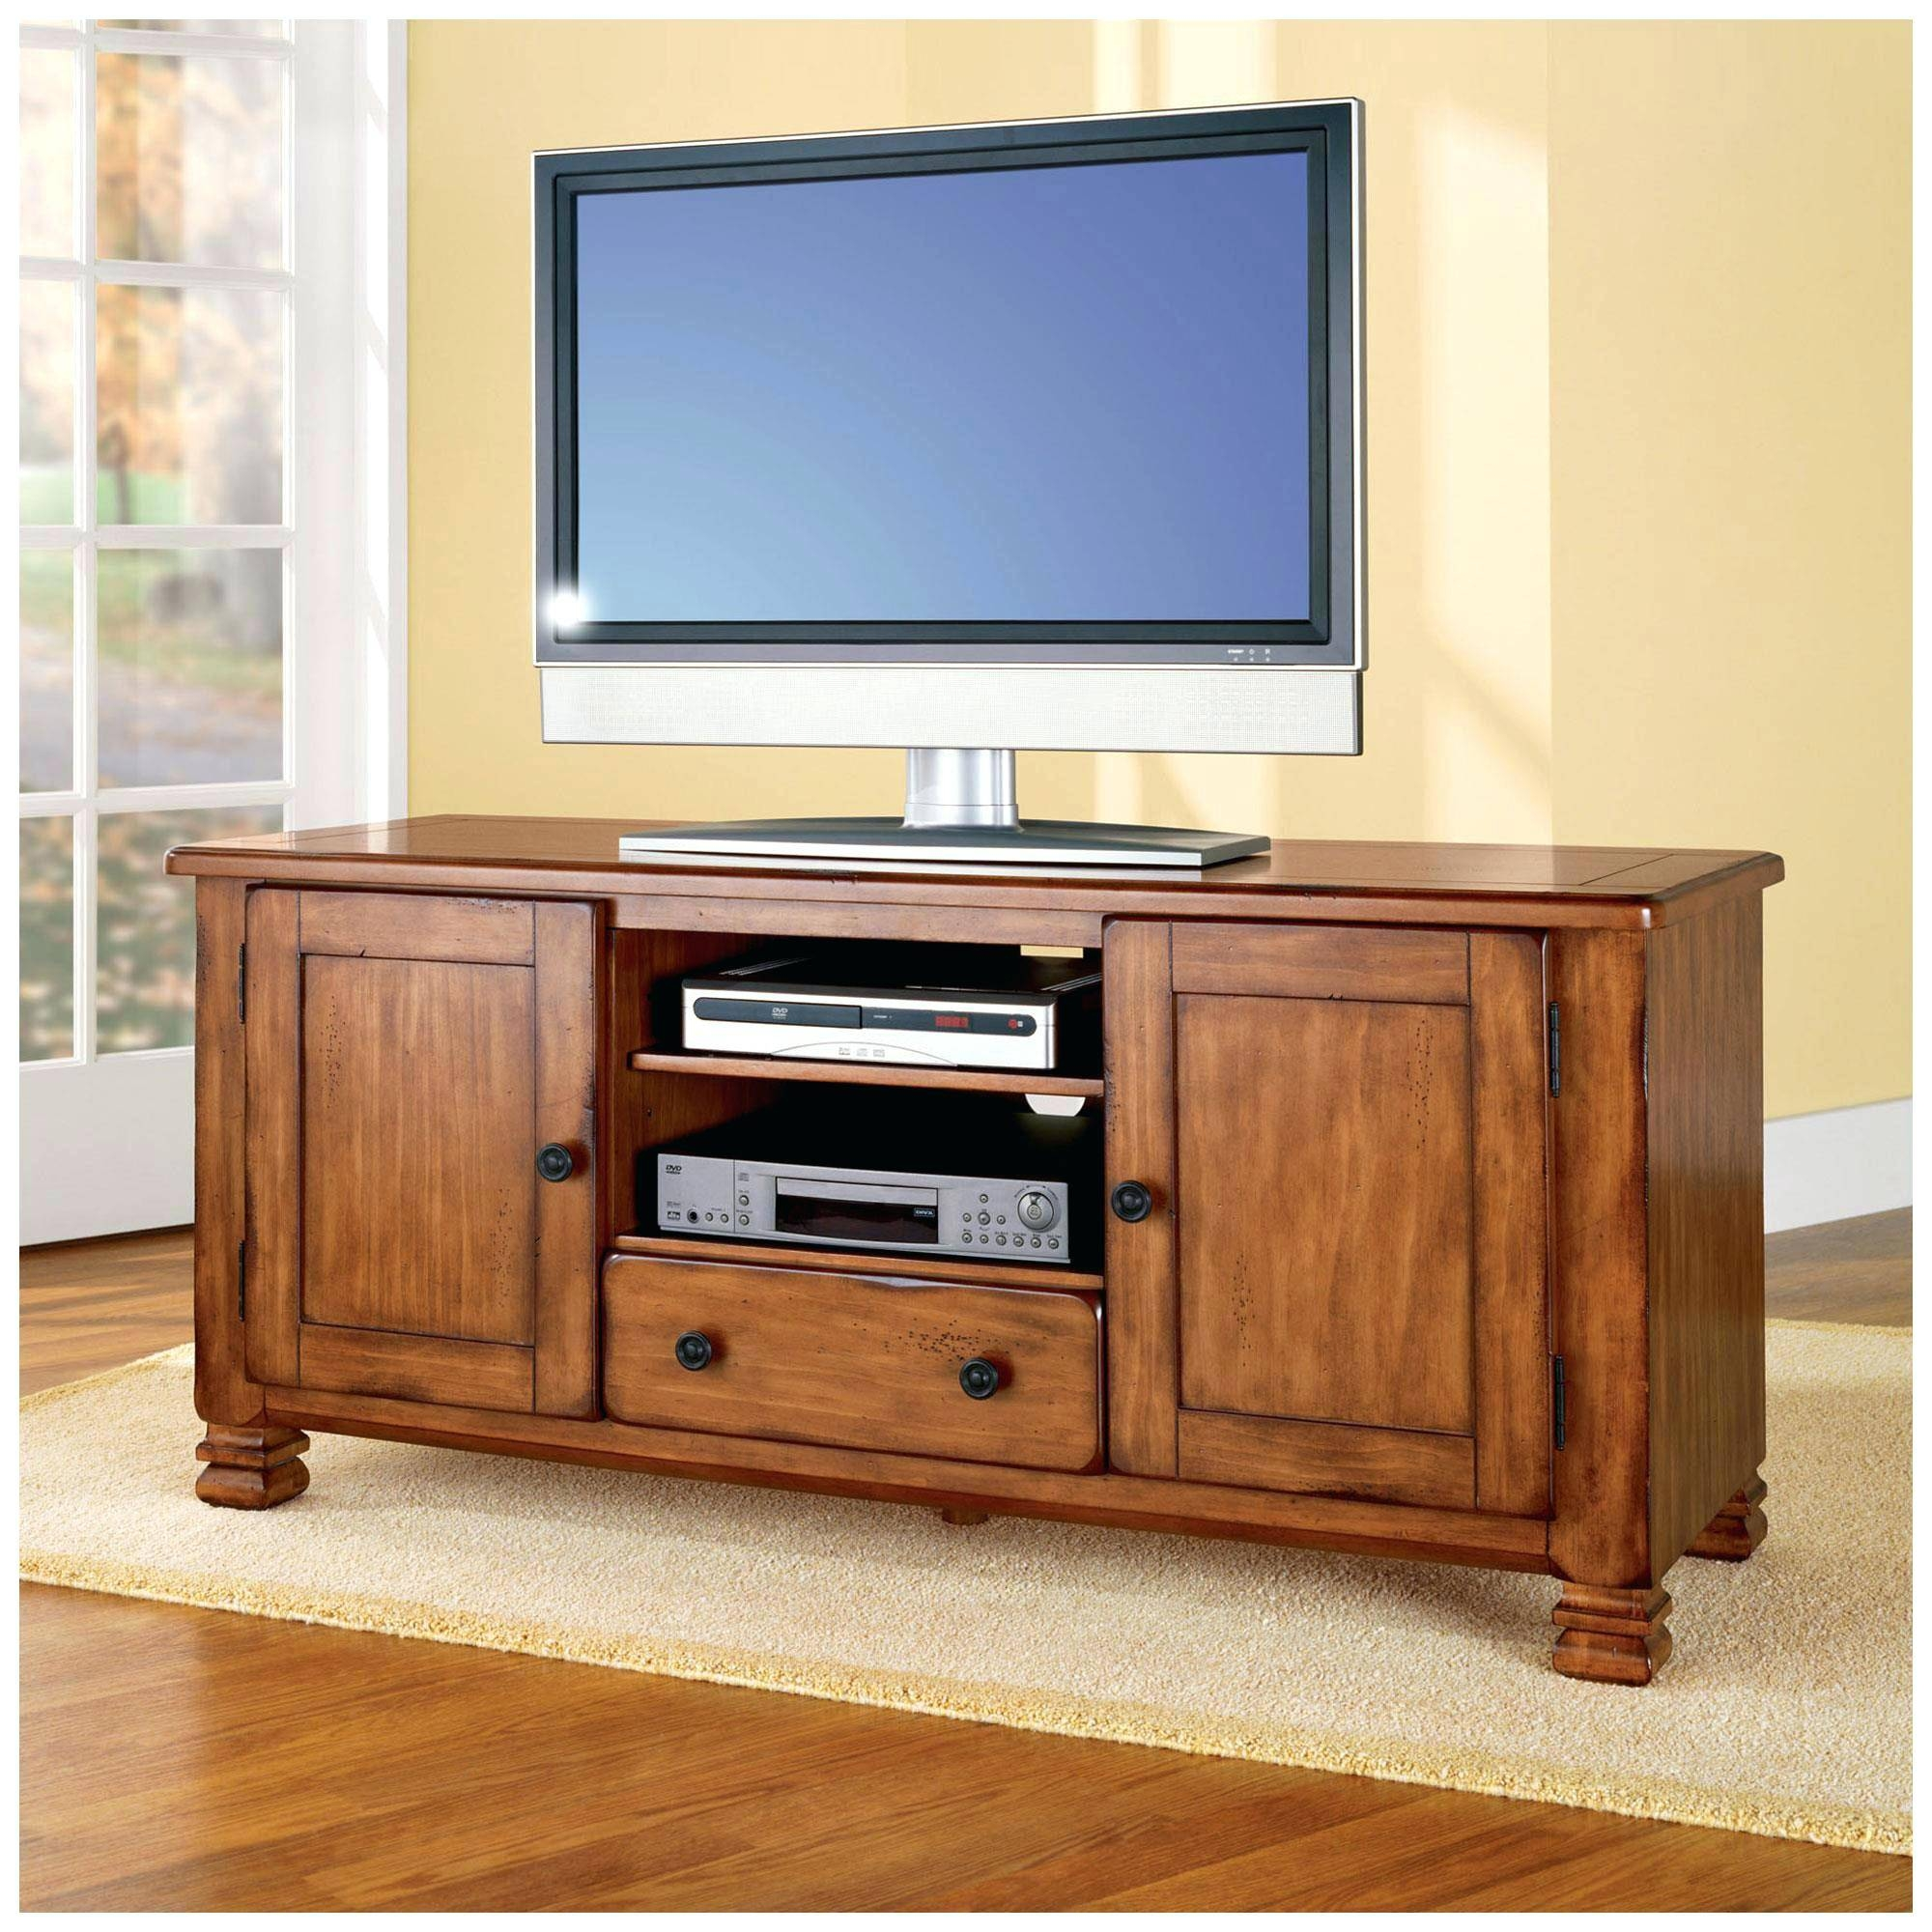 Tv Stand : 122 Stupendous Oak Corner Tv Stand With Fireplace Pertaining To Oak Tv Stands For Flat Screens (View 2 of 15)